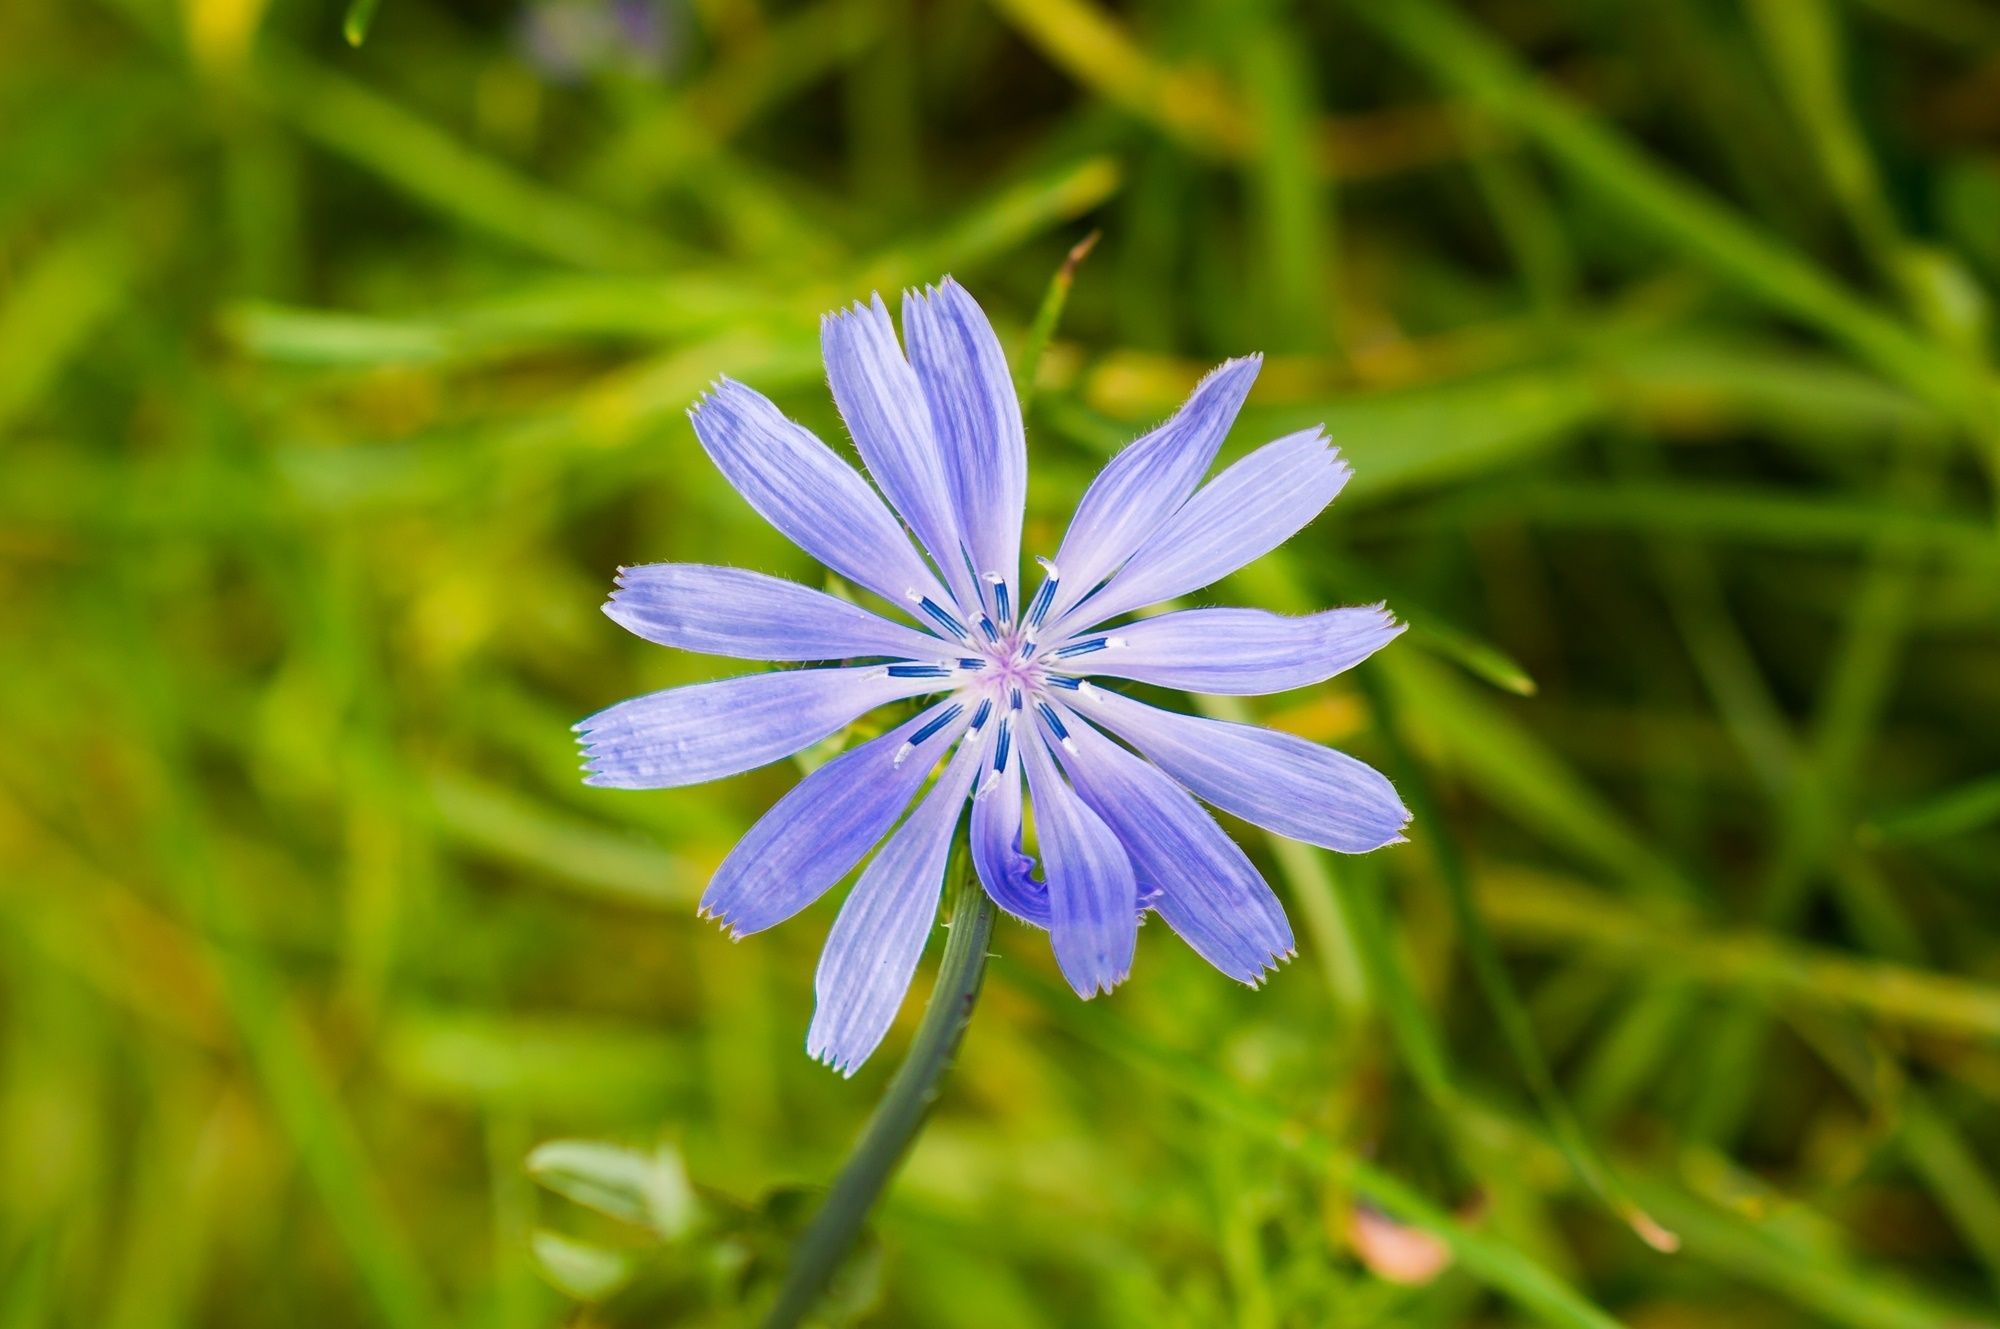 Closeup of common chicory in a garden under the sunlight with a blurry background